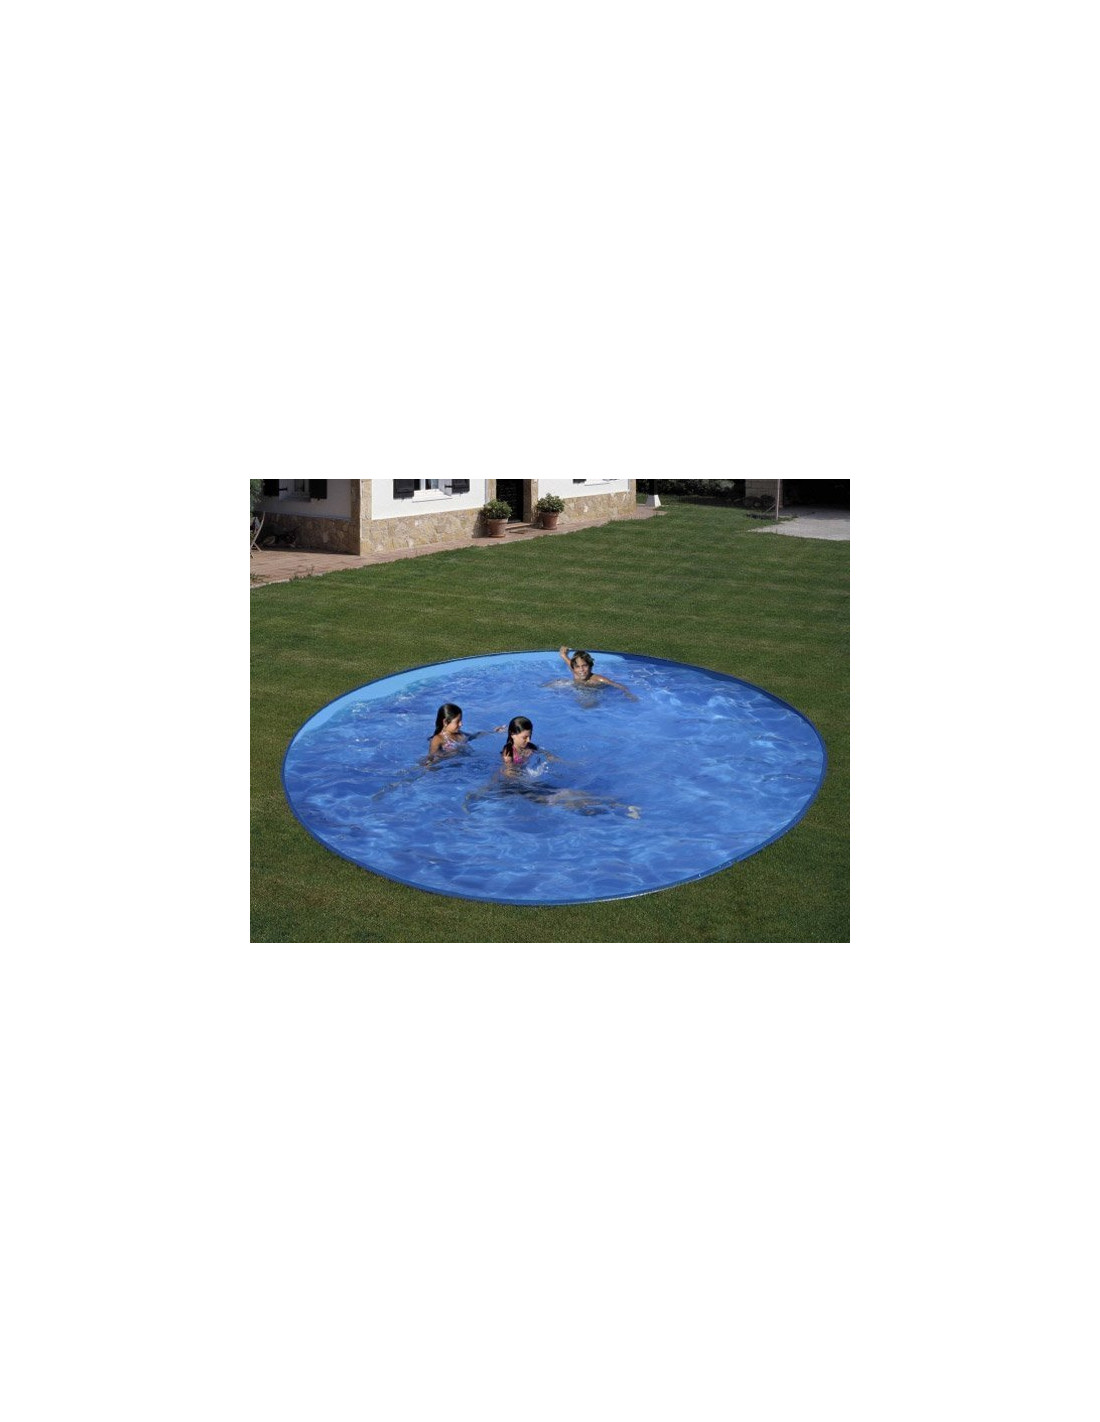 Piscine enterr e en kit star pool 4 20 3 50 cm x h 1 for Piscine en kit enterree